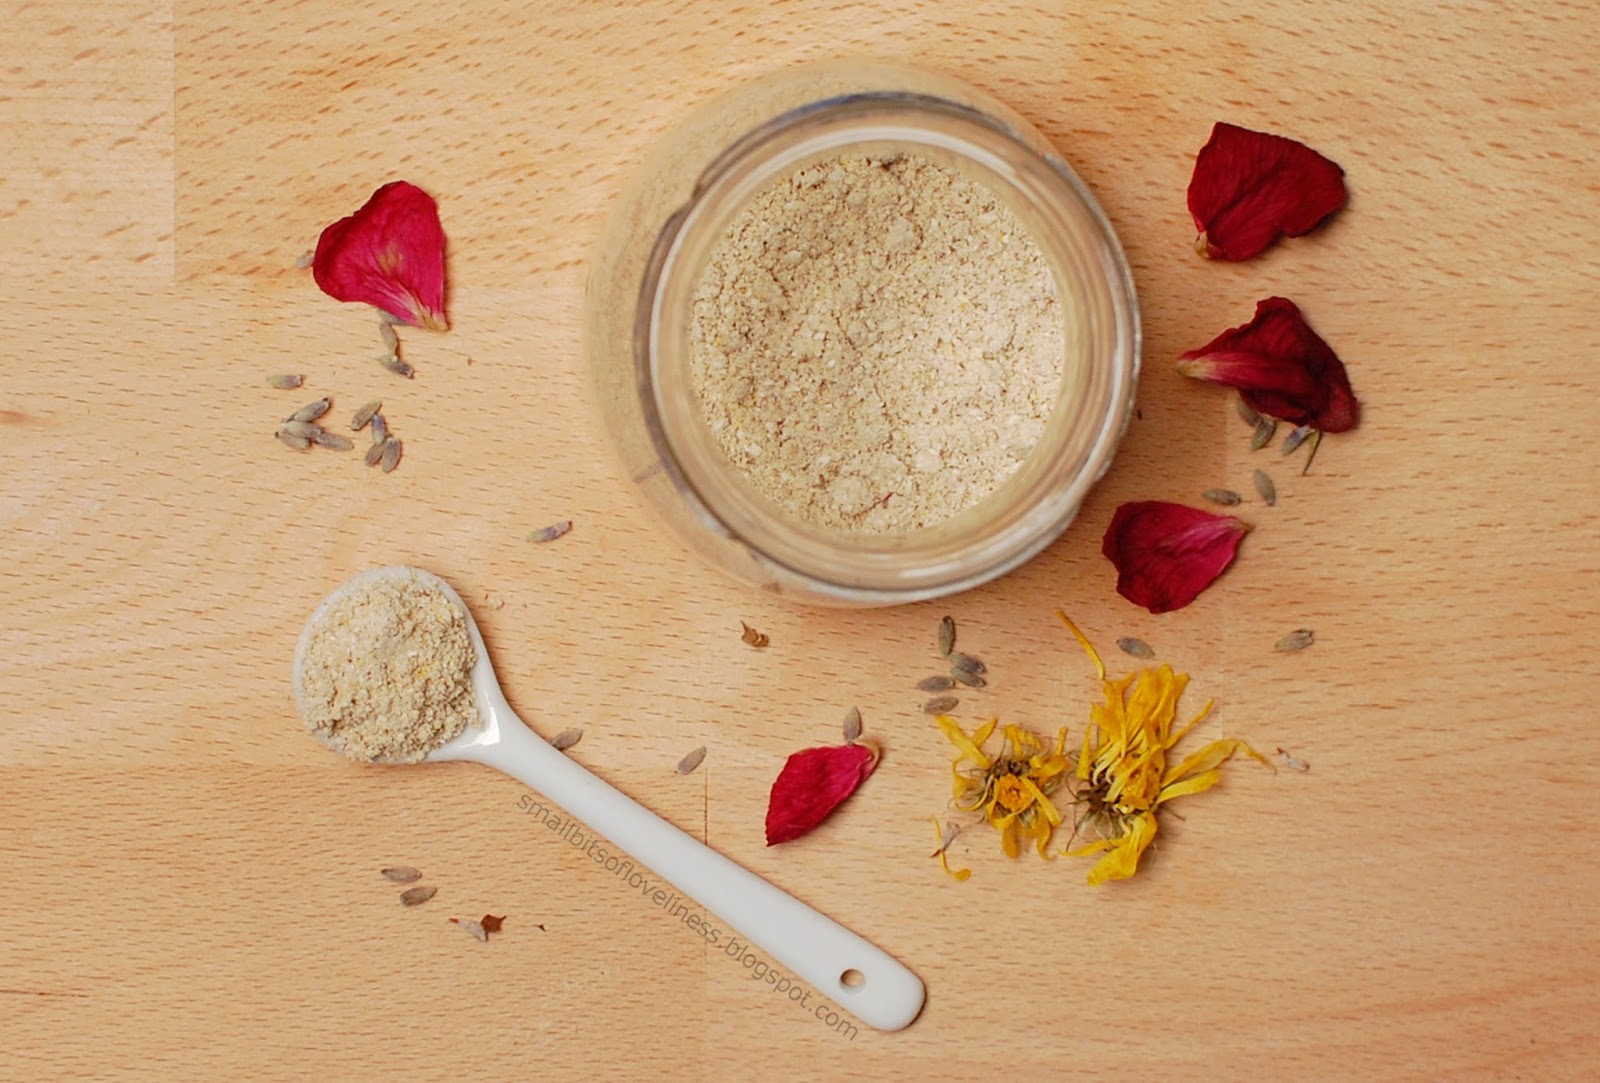 DIY Lavender Grains Cleanser Exfoliator